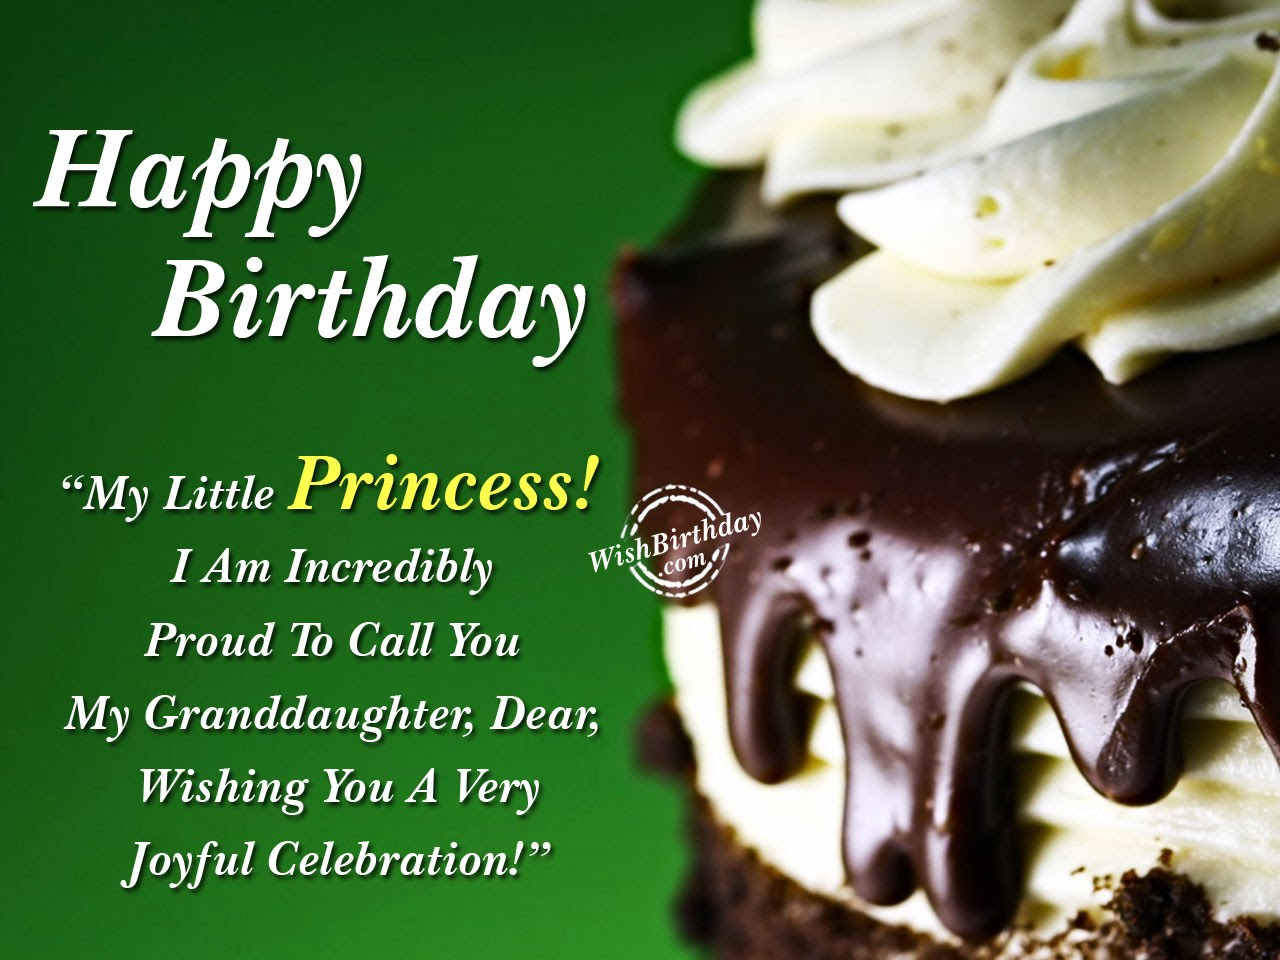 My Little Princess Birthday Wishes For Granddaughter